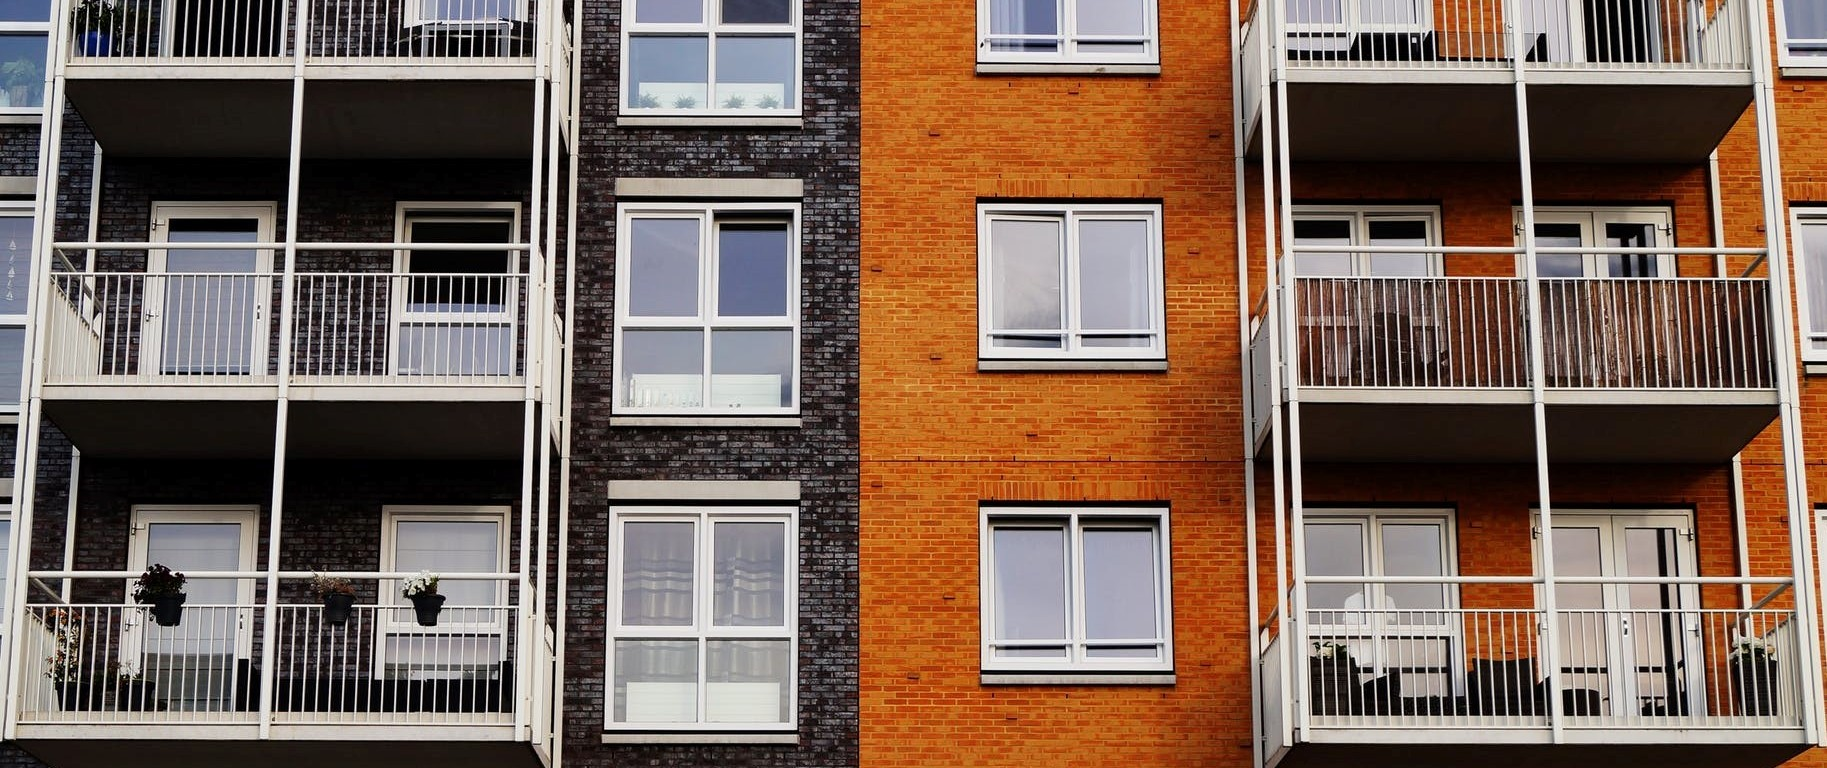 A block of apartment windows and balconies, half on a gray brick wall and half on an orange brick wall